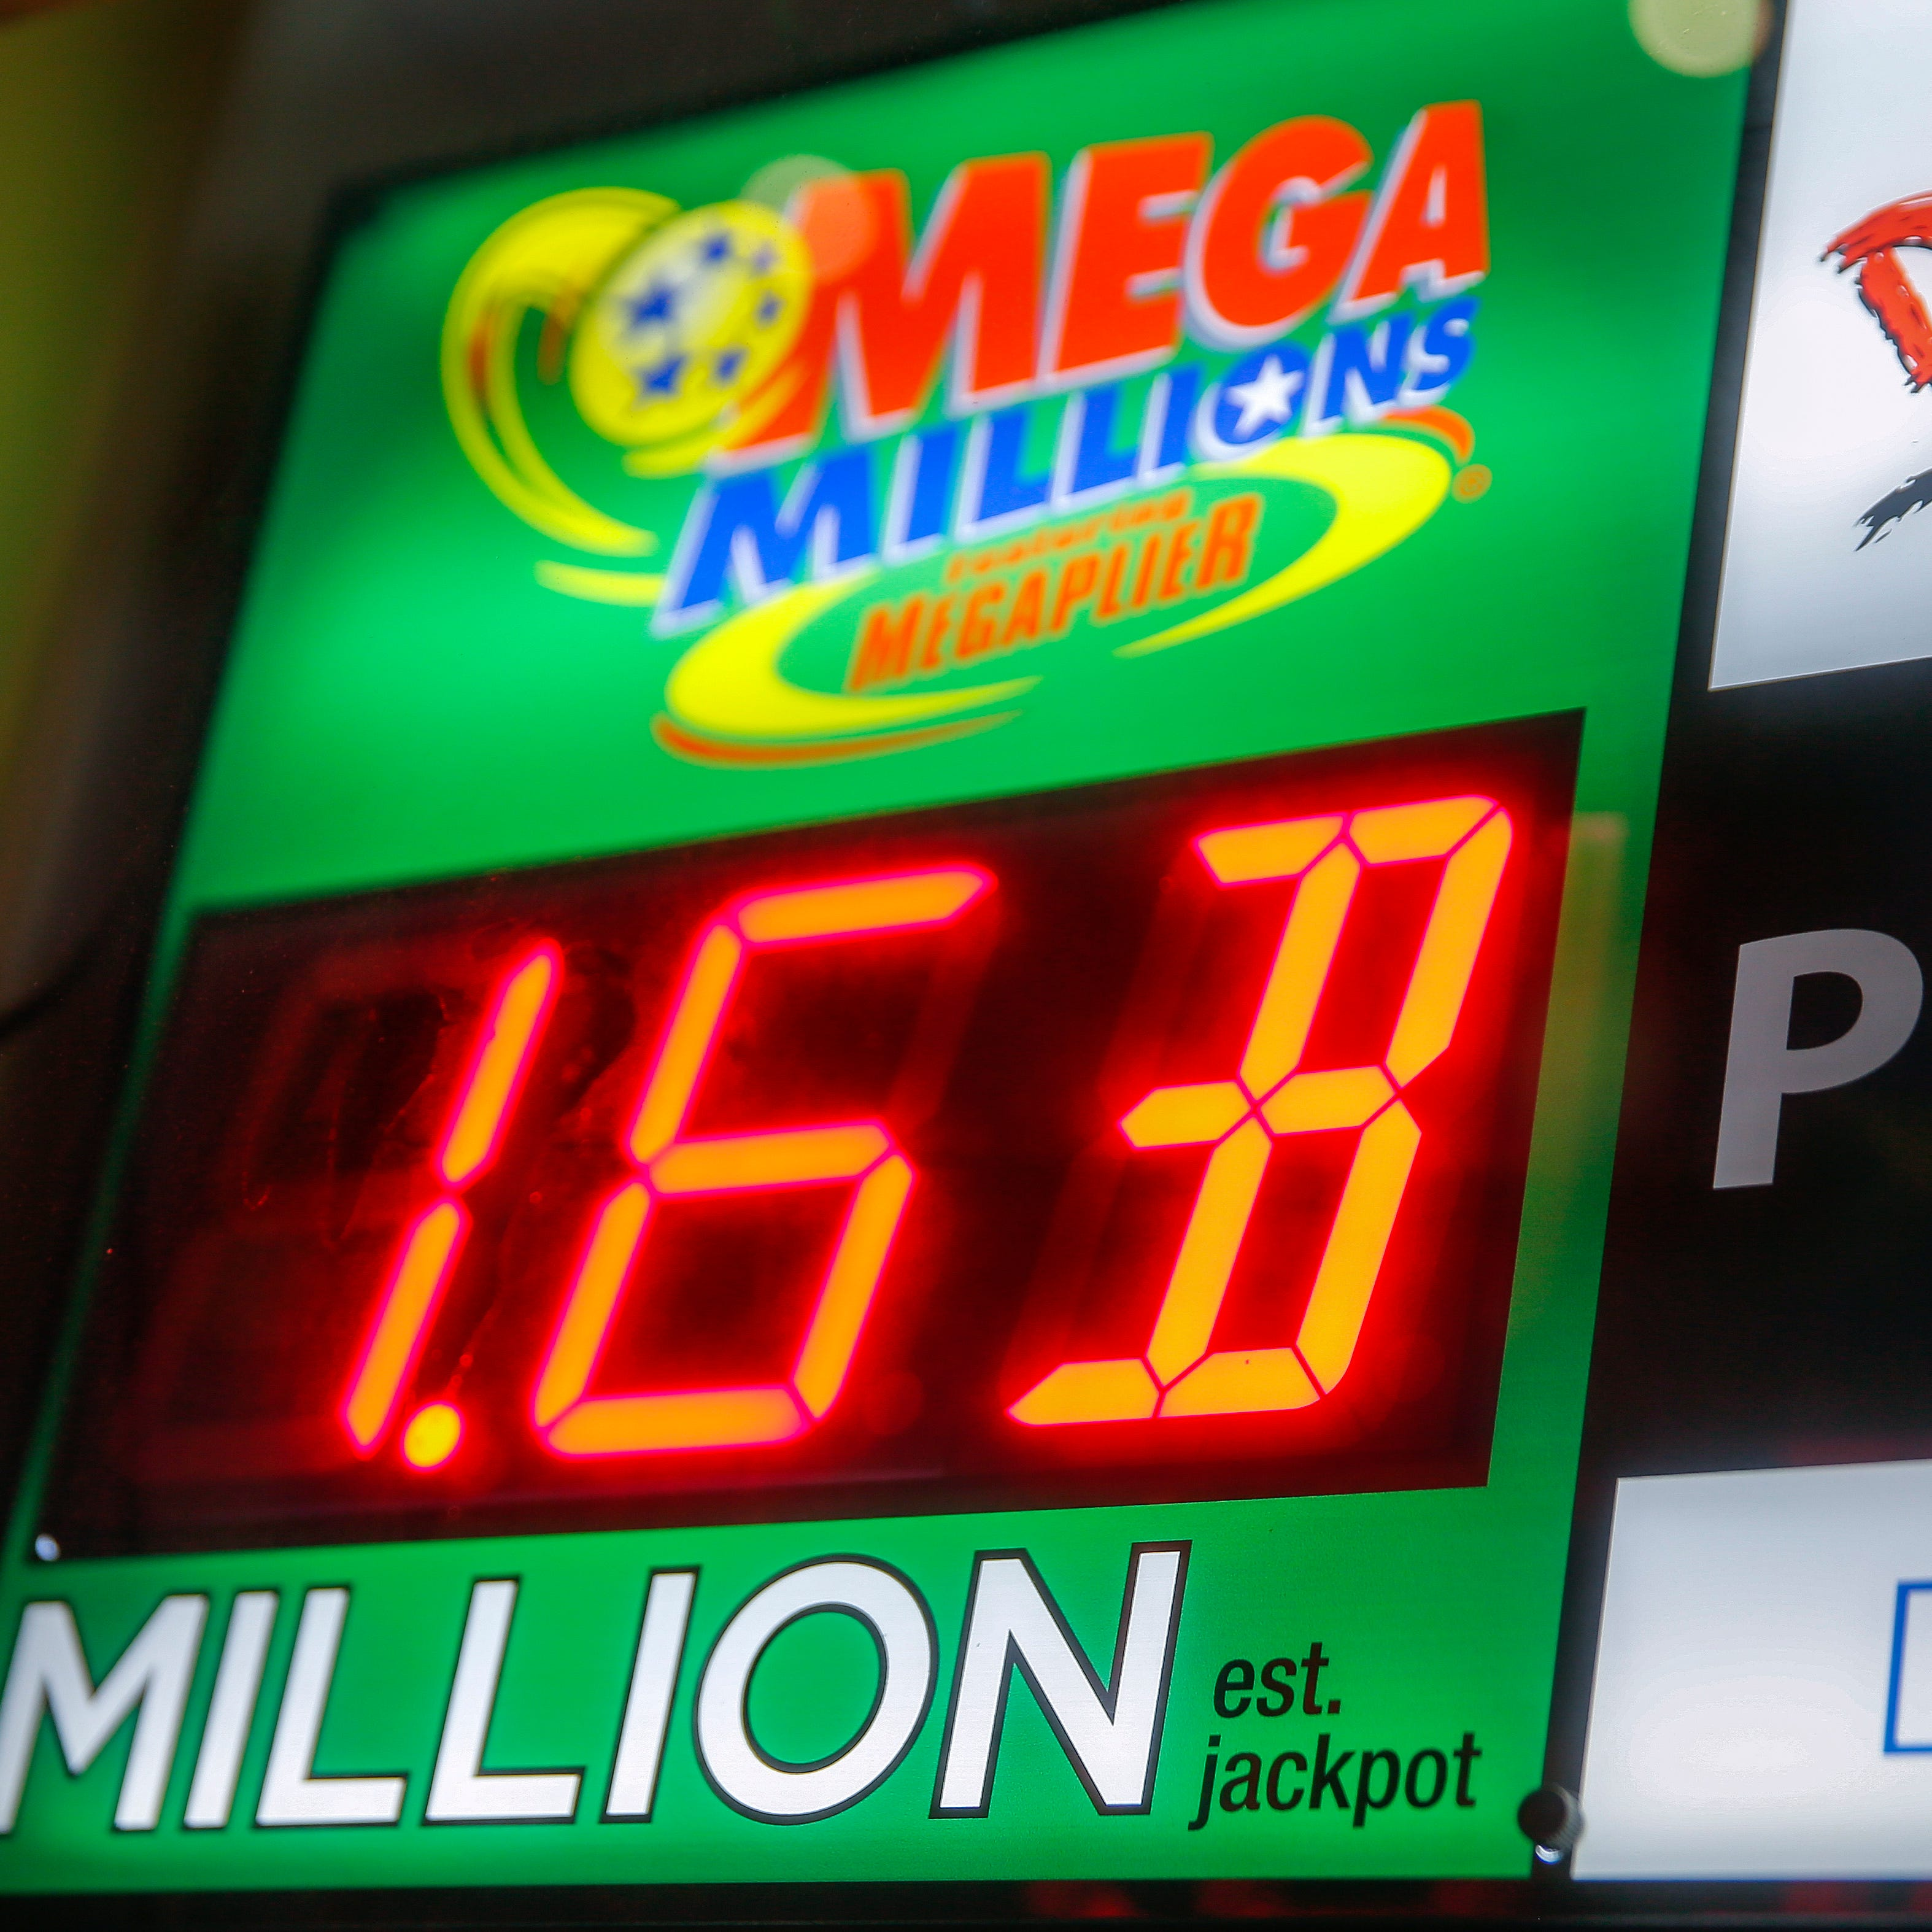 Mega Millions jackpot has increased again, prolonging lottery fever